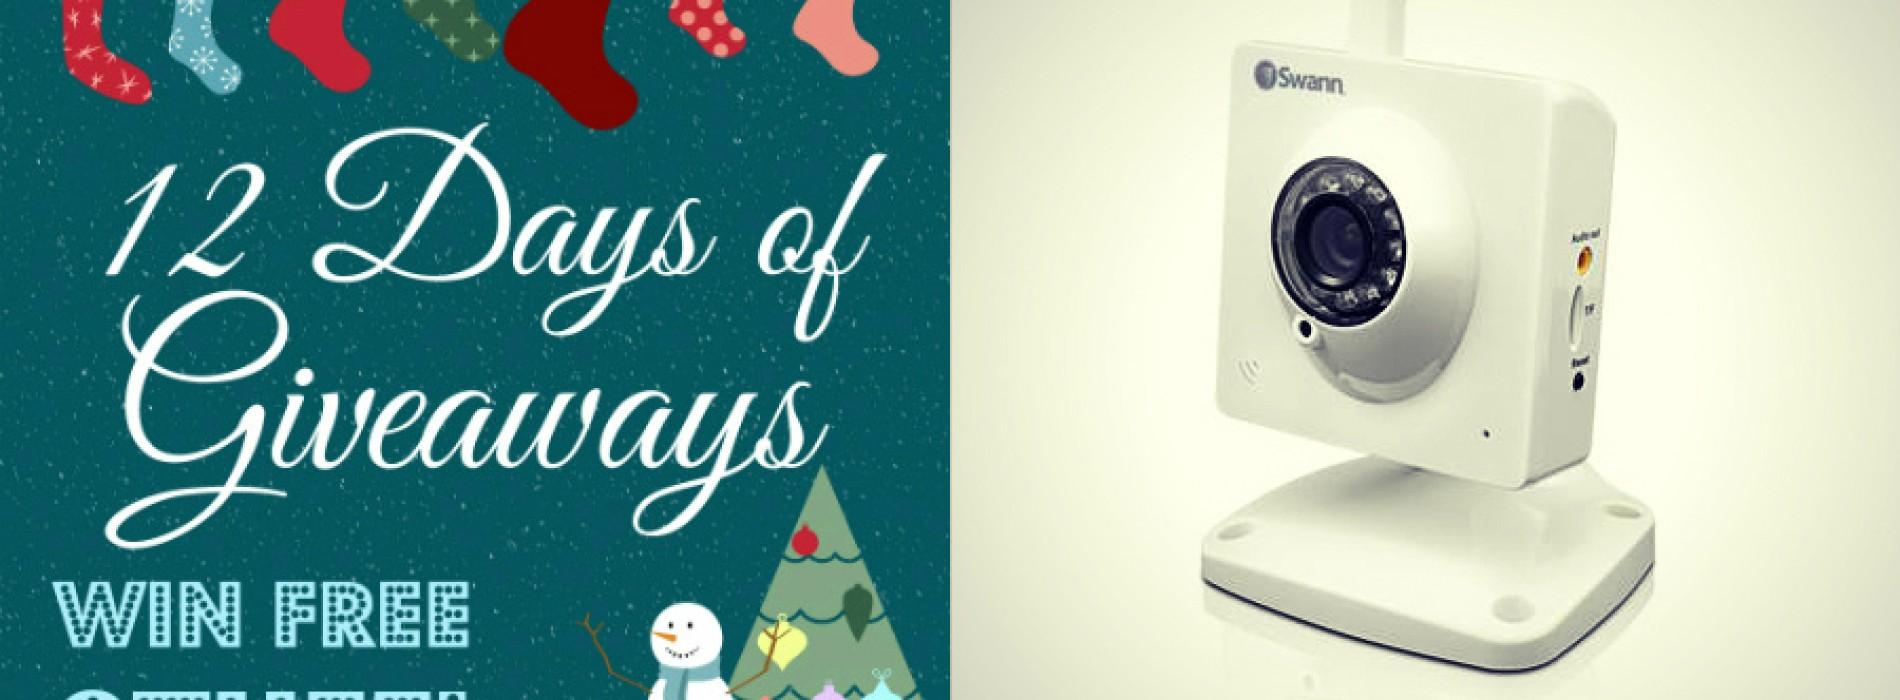 12 Days of Giveaways: Win a SwannEye HD Plug & Play (DAY 5) (UPDATED)